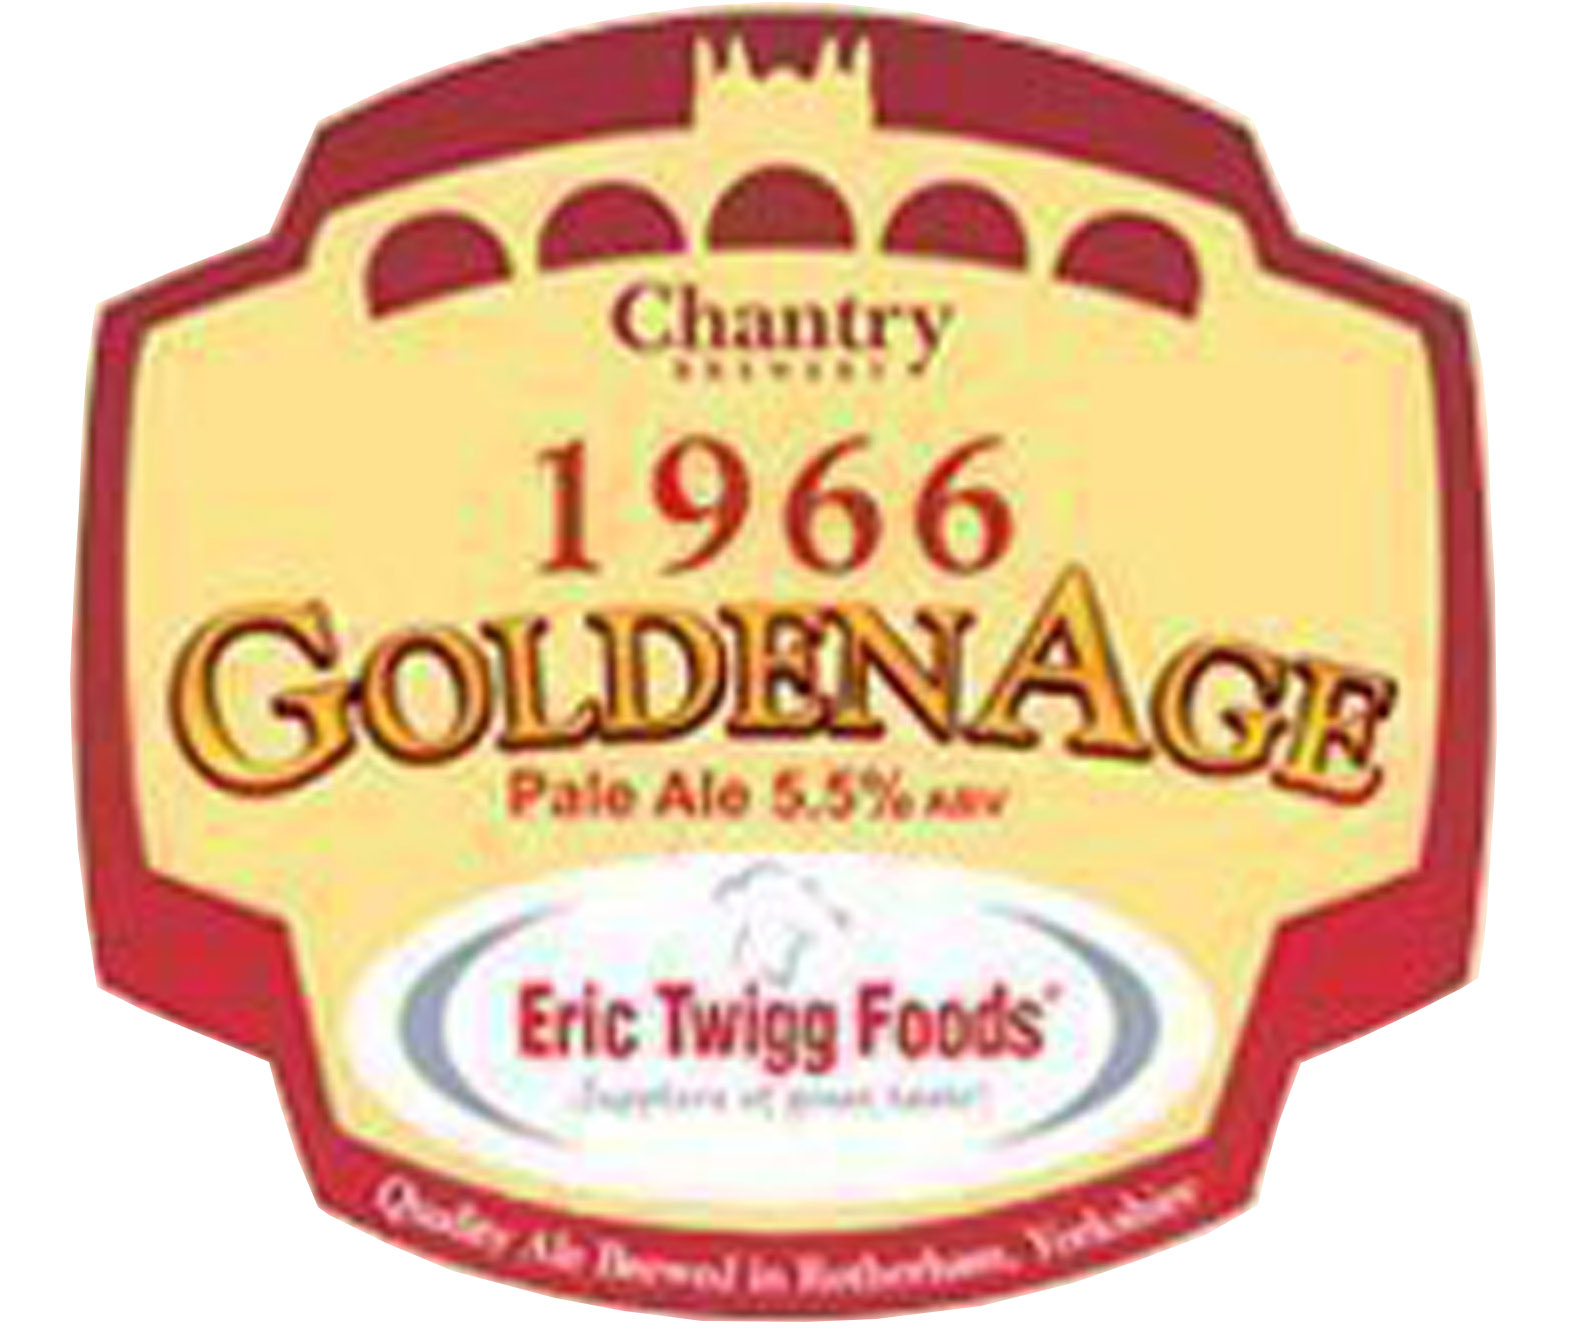 Chantry Brewery 1966 Golden Age